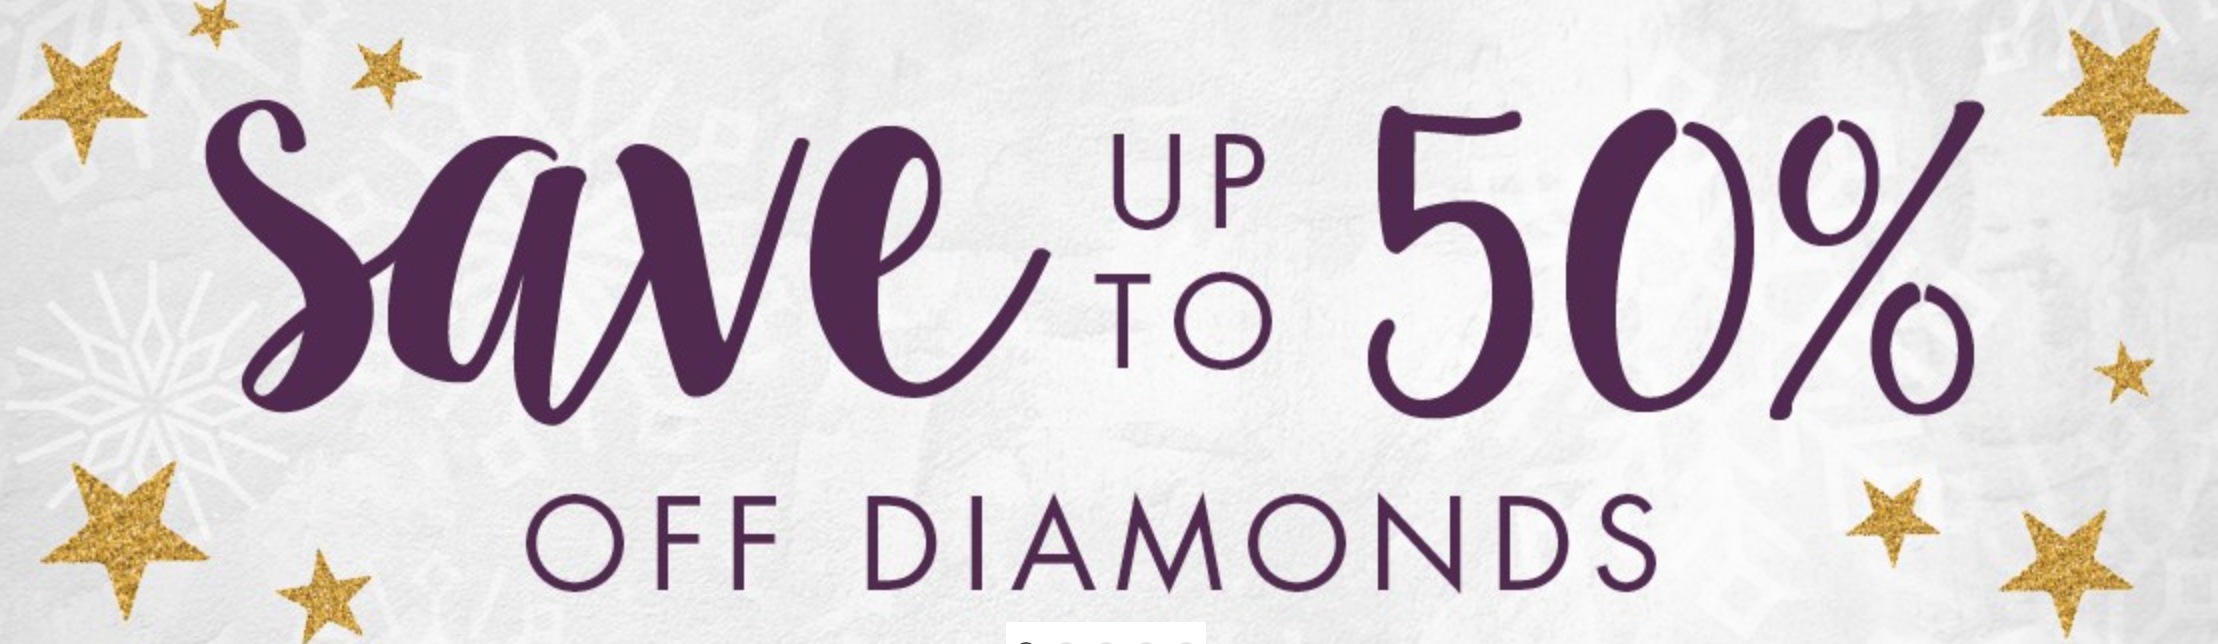 Fhinds: up to 50% off diamonds